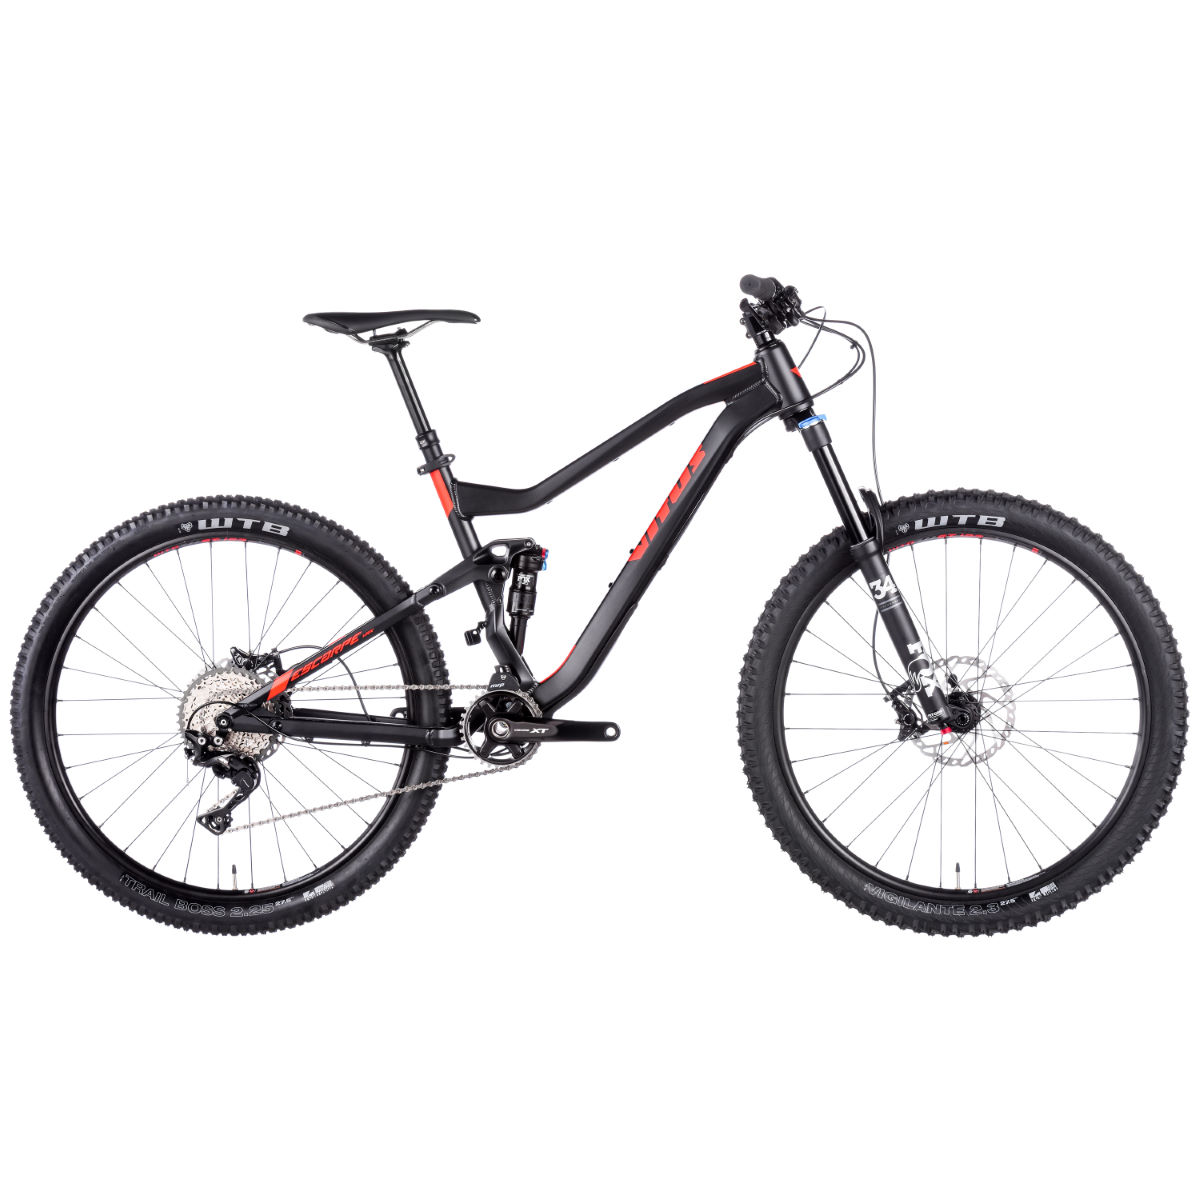 VTT tout suspendu Vitus Escarpe VRX (XT 1x11, 2017) - 15'' Stock Bike